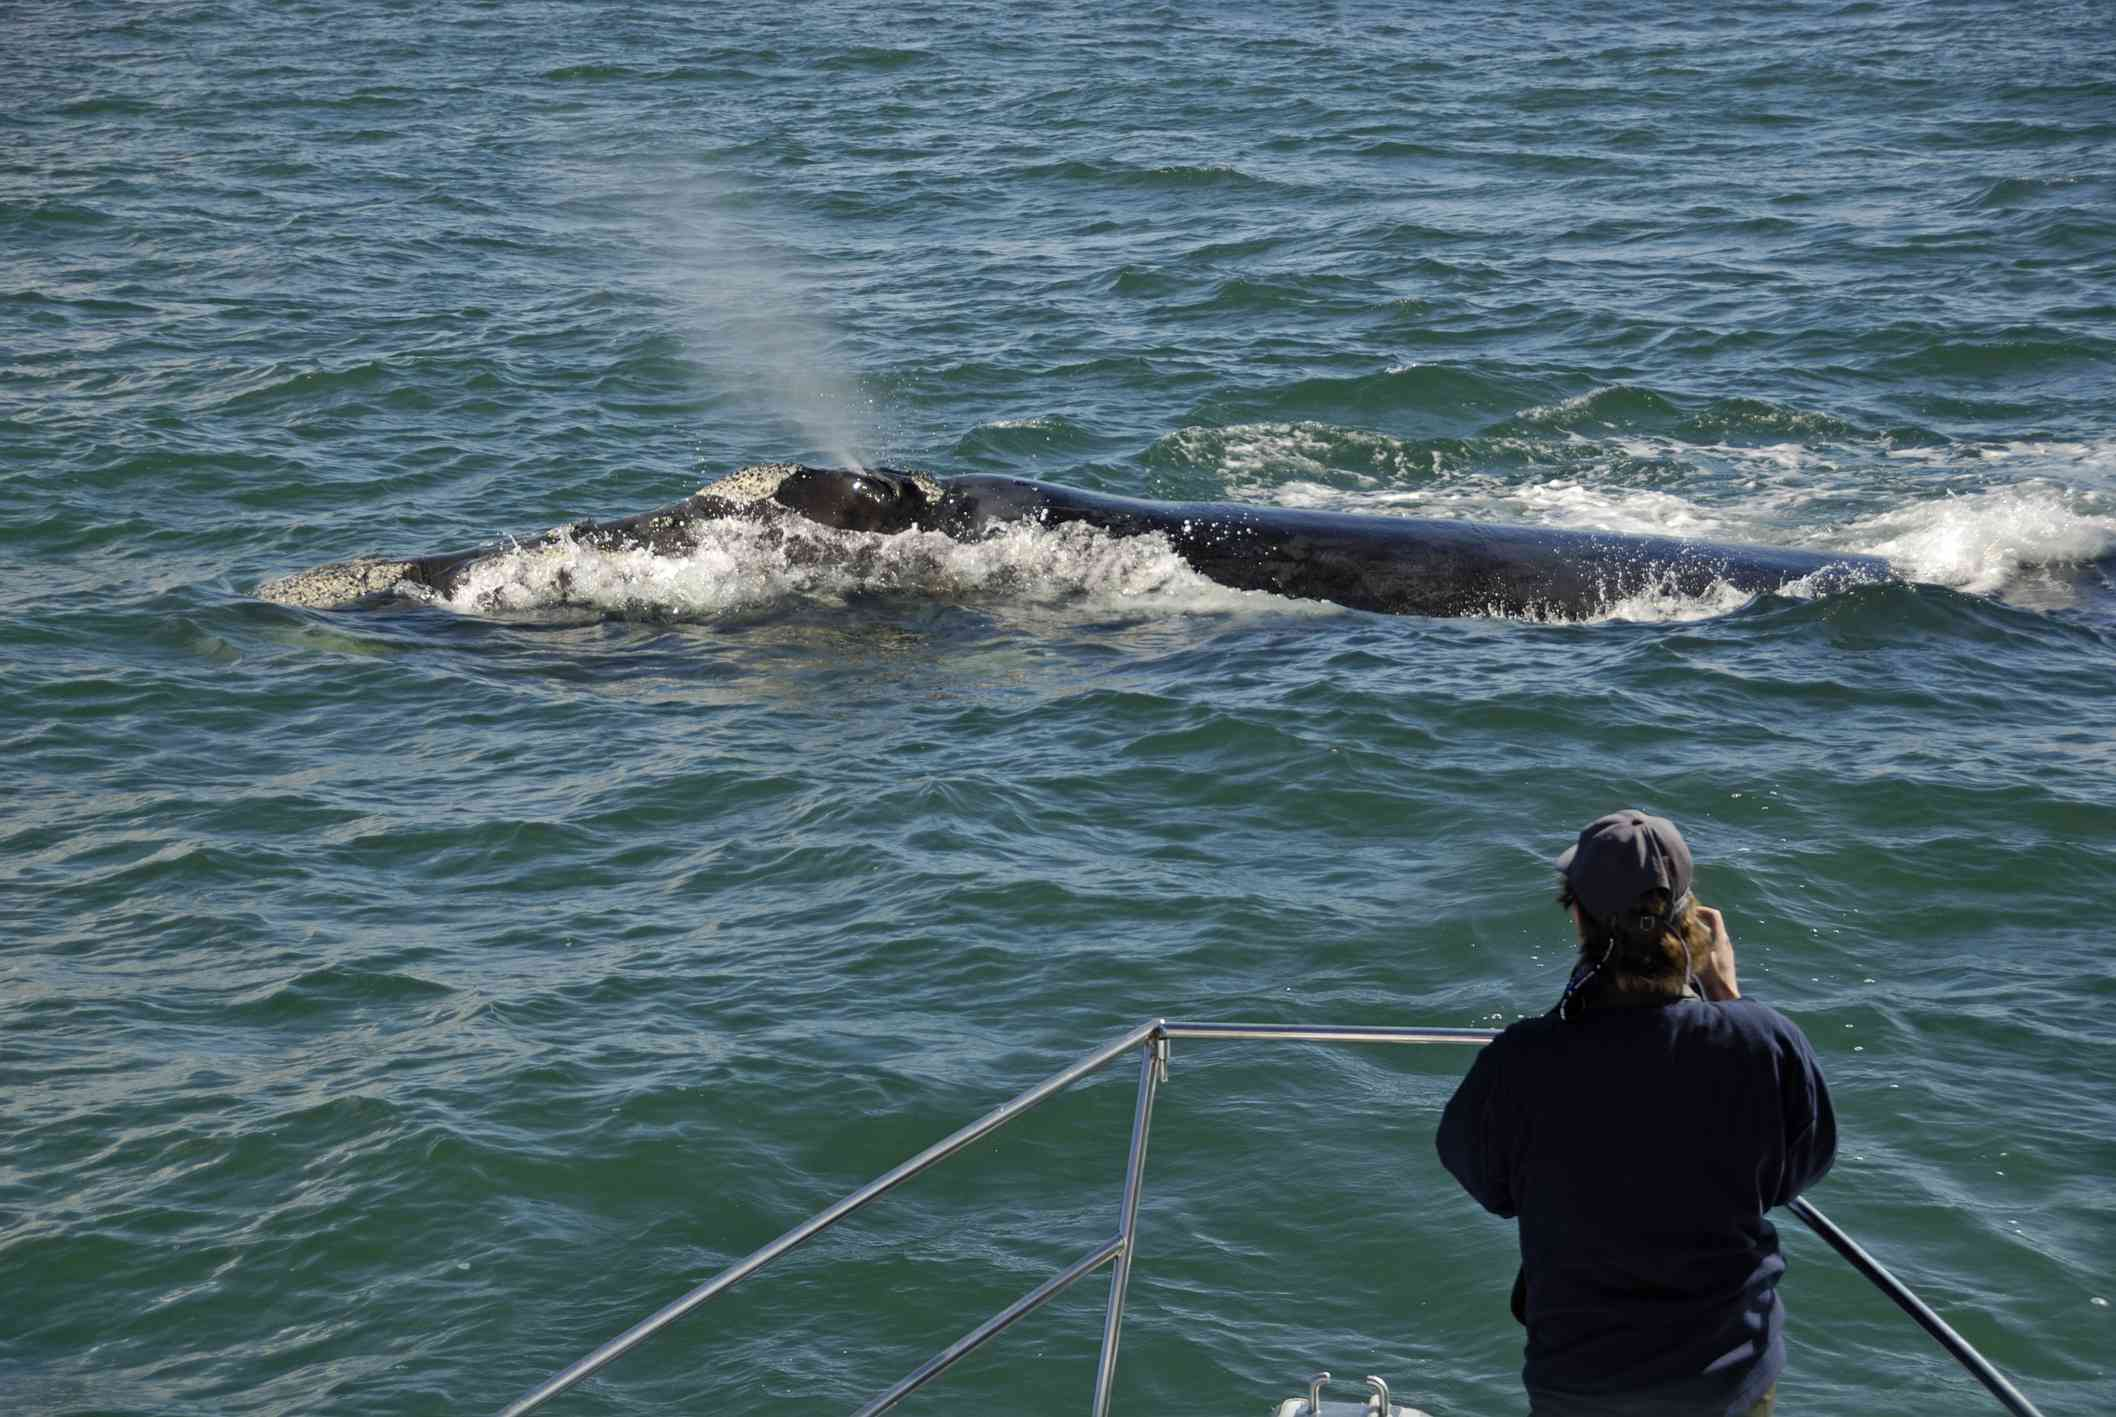 Watching a southern right whale, South Africa